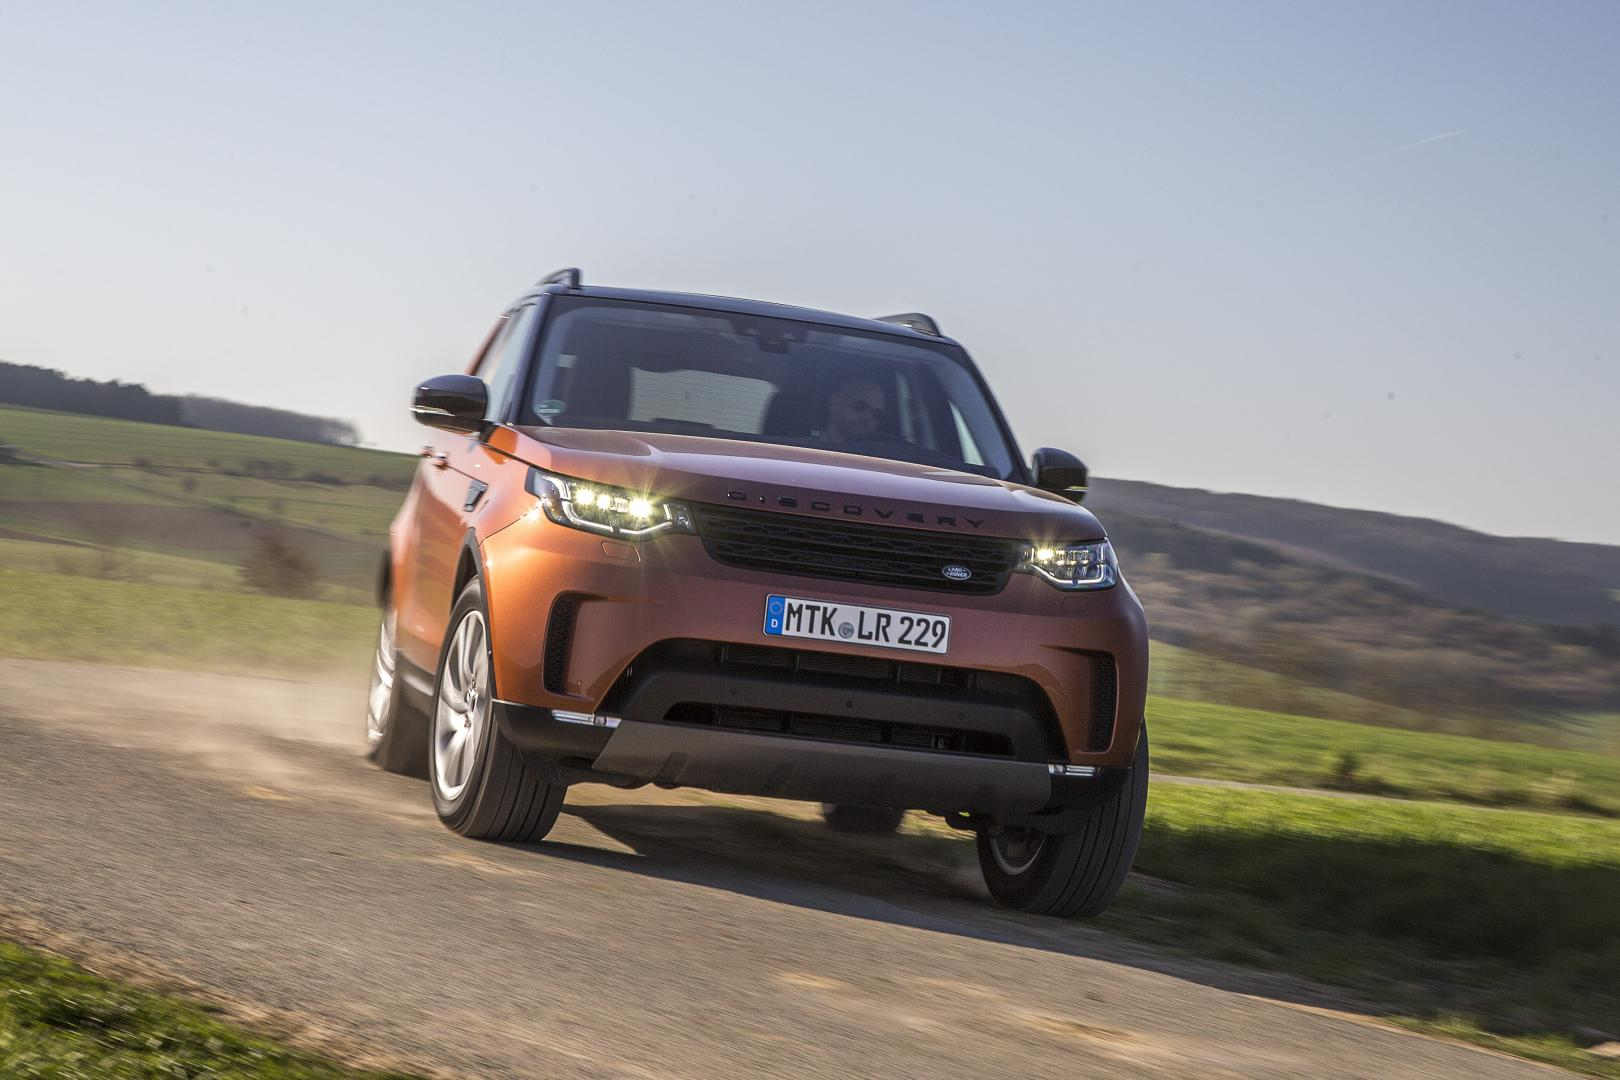 land rover discovery hse sd4 2017 test en specificaties topgear. Black Bedroom Furniture Sets. Home Design Ideas